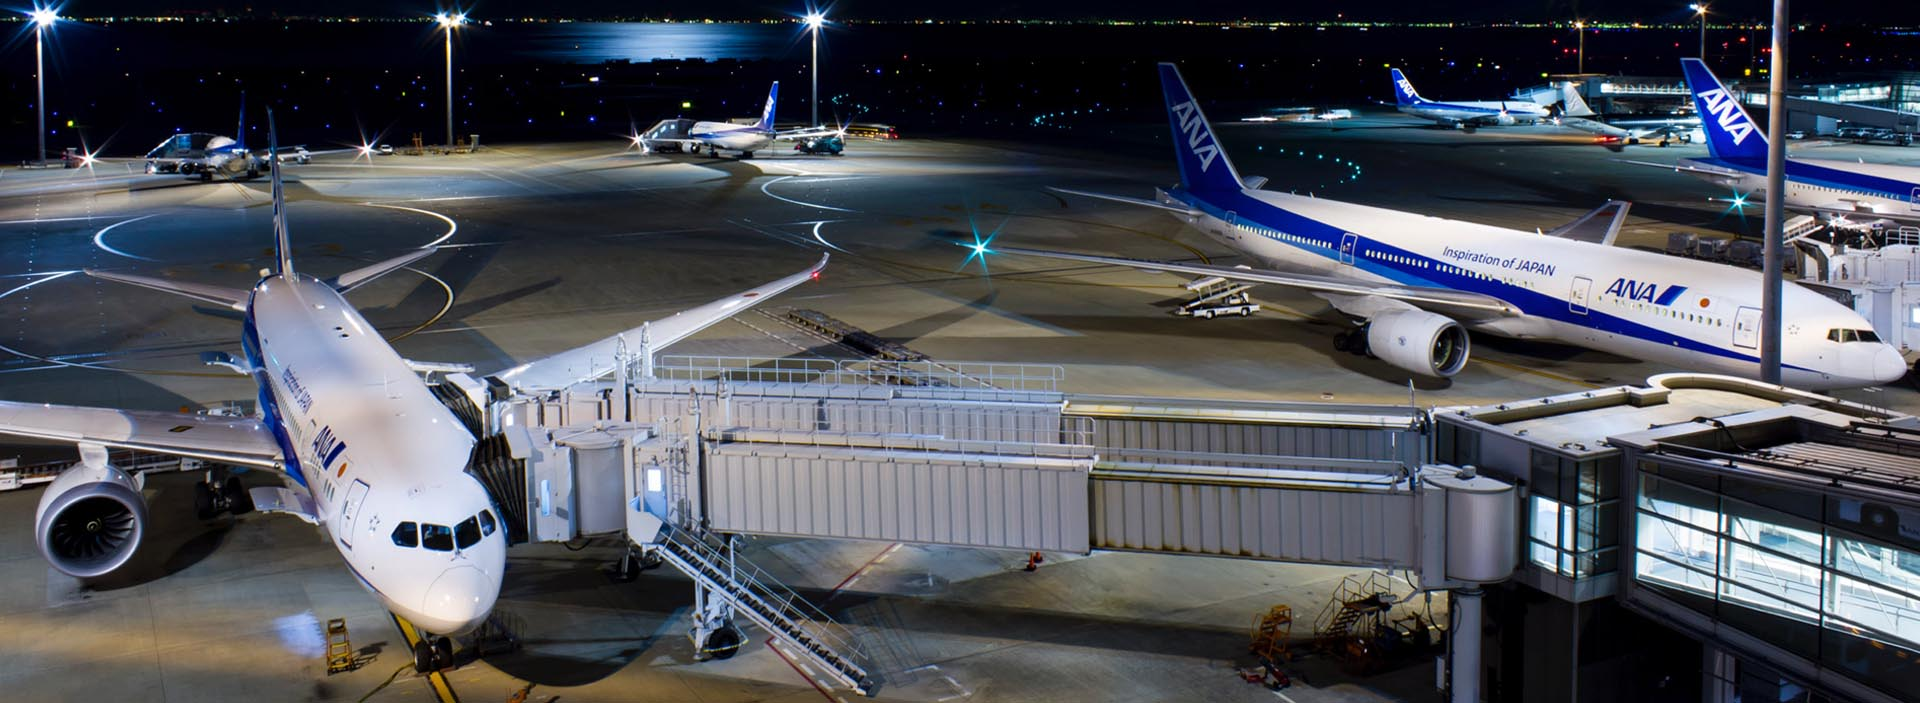 Red-Eye Flights: Advantages, Disadvantages, and Tips to Cope